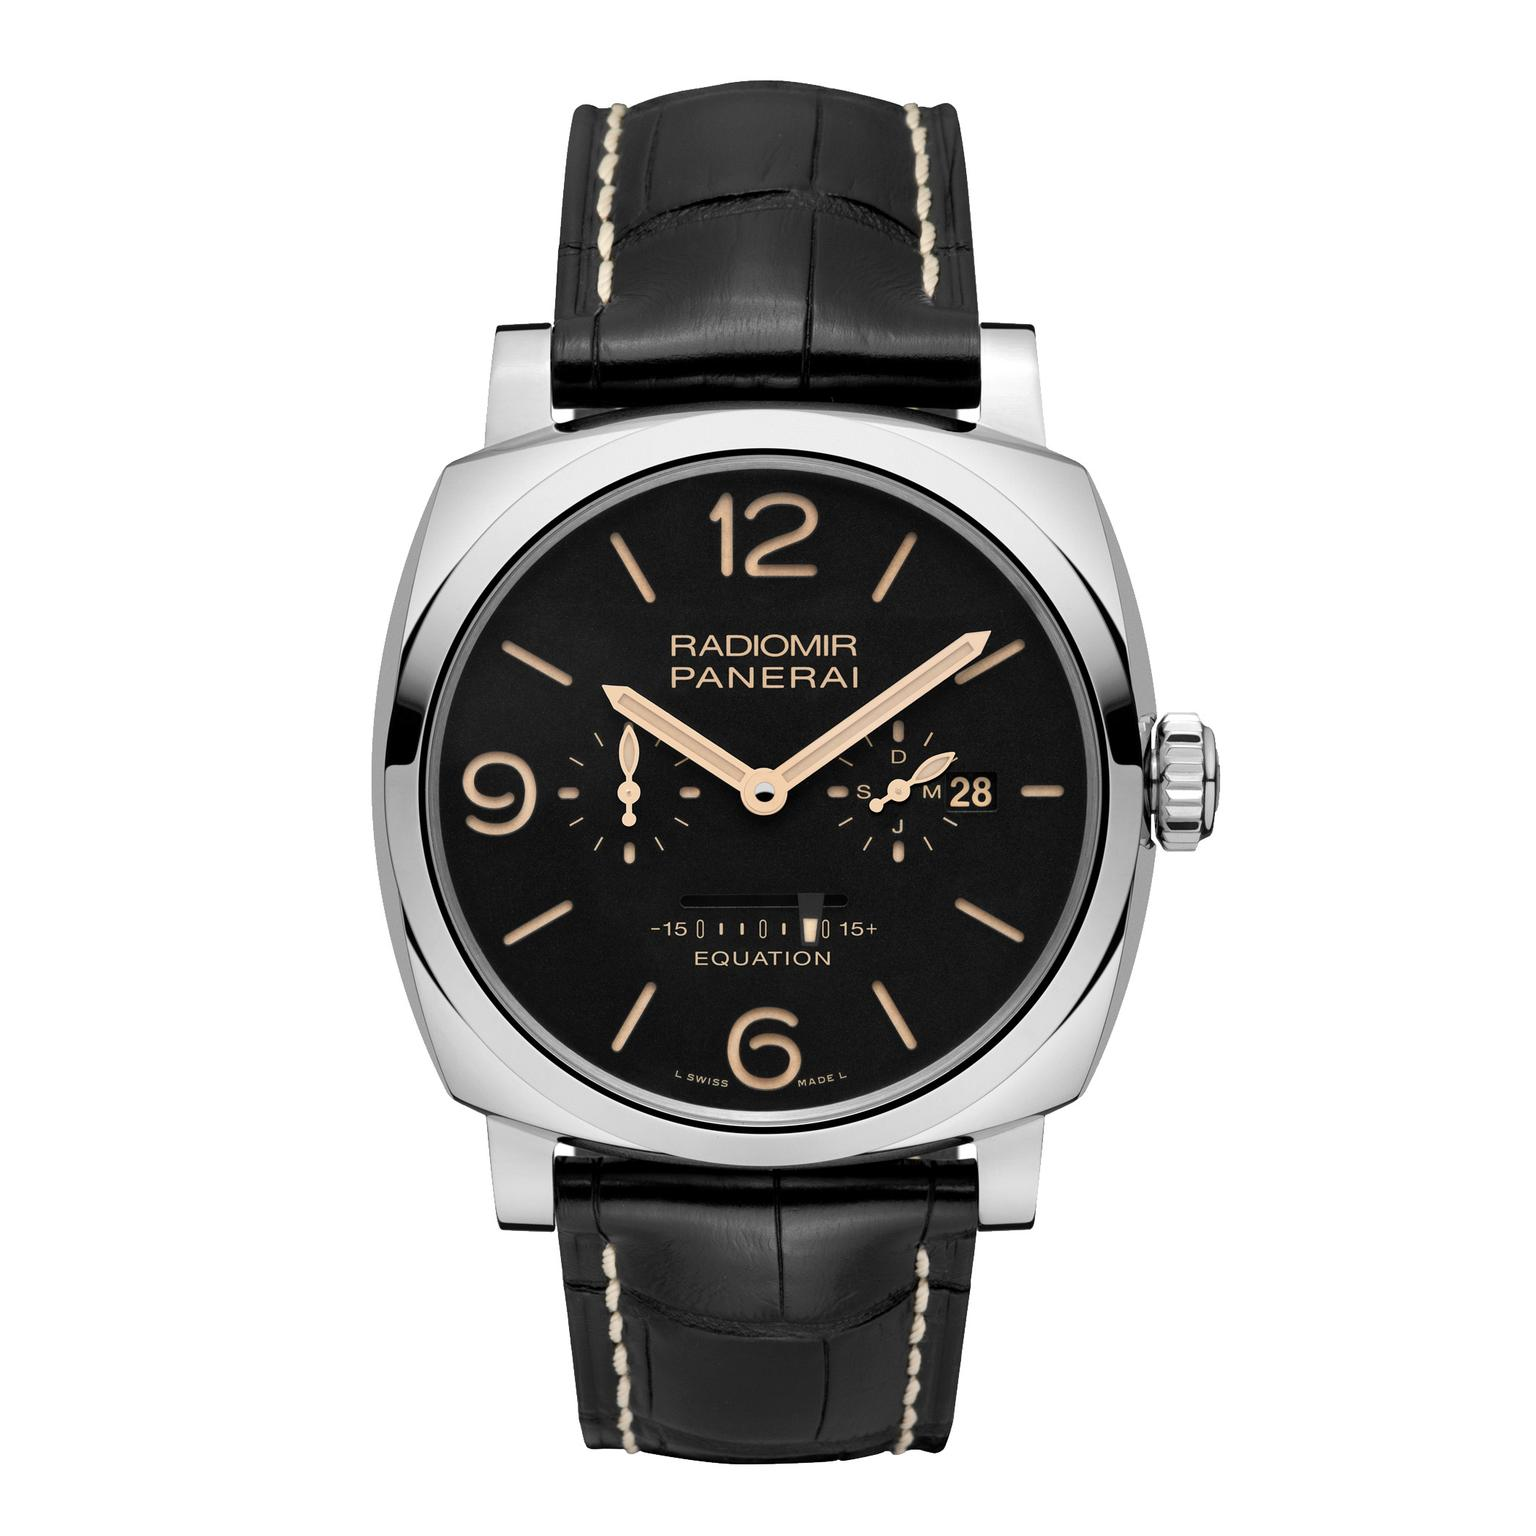 Panerai Radomir Equations of Time Zoom